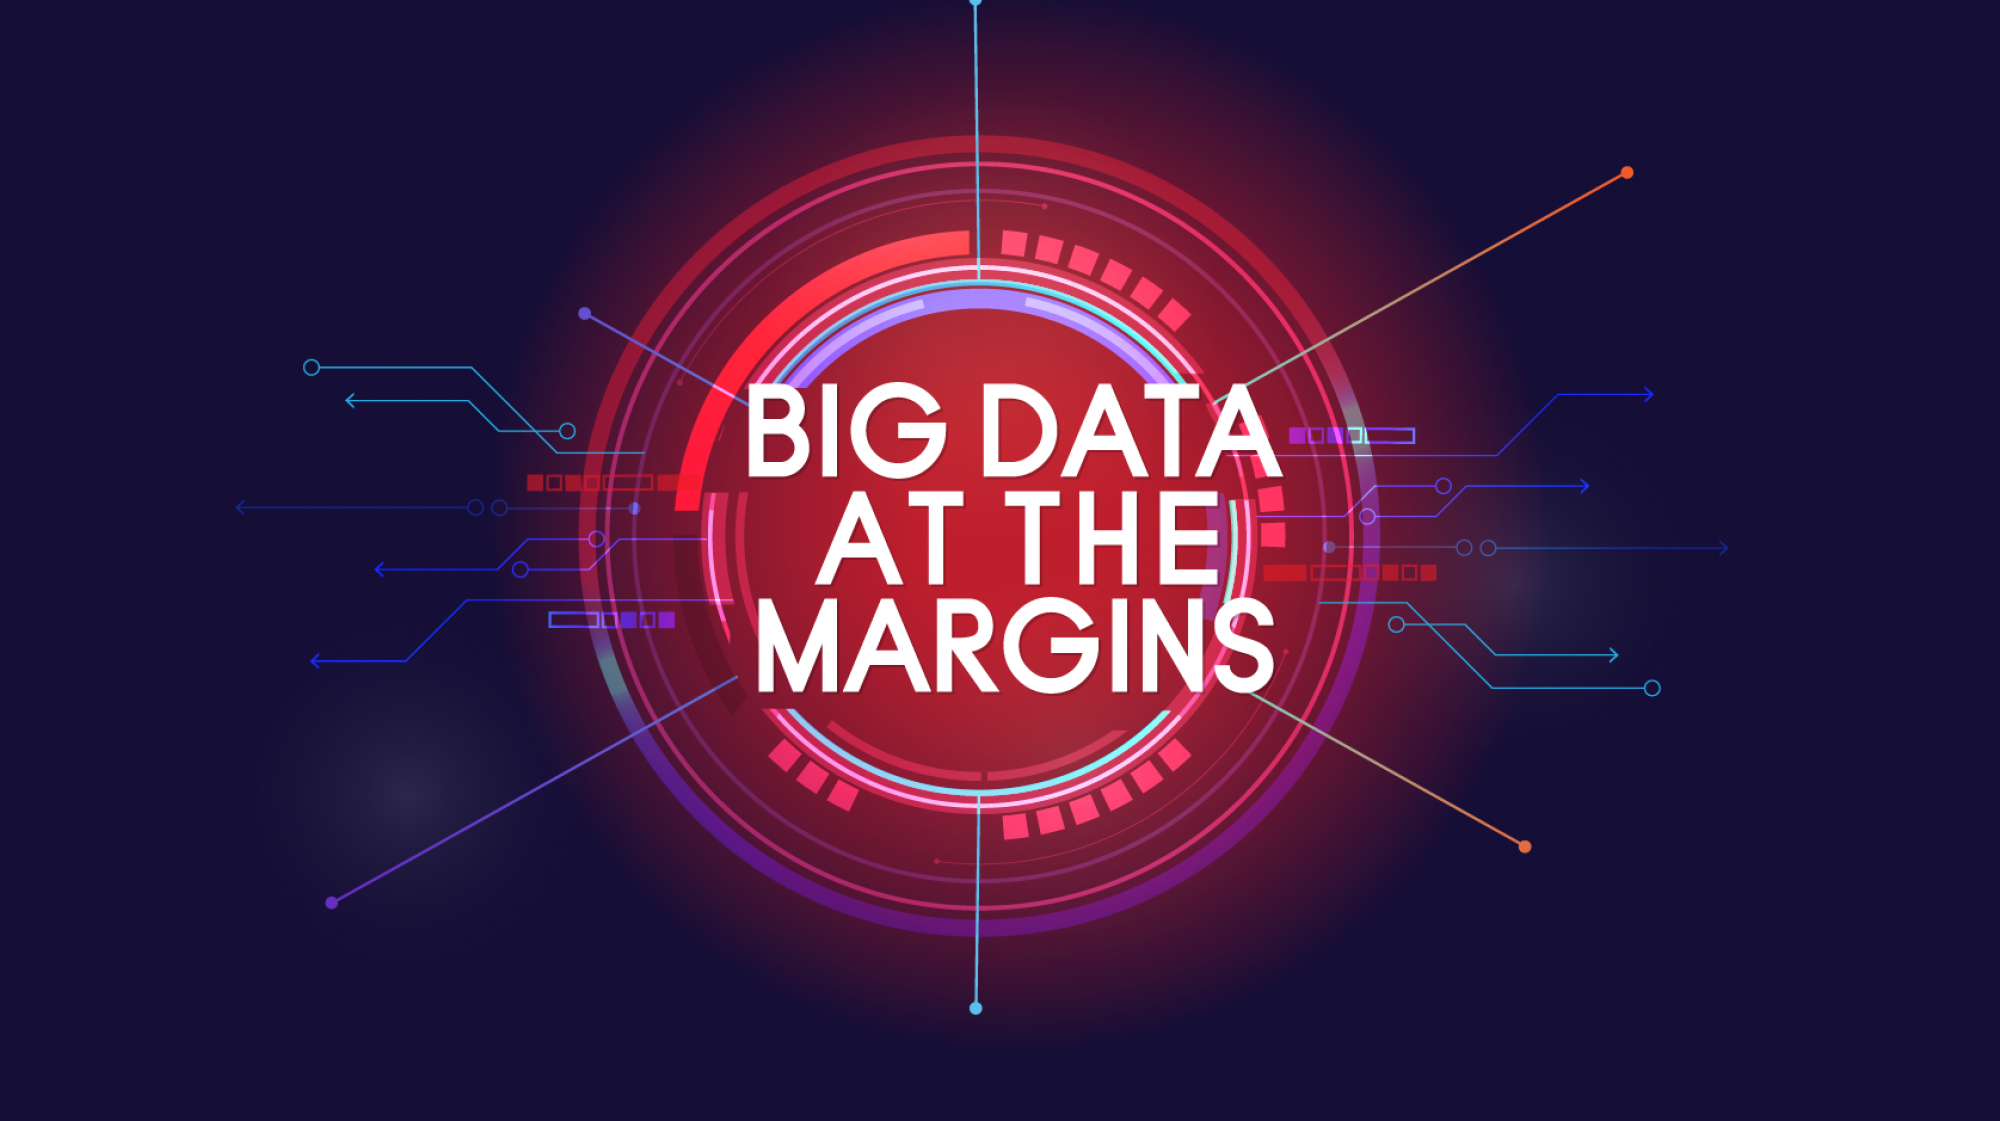 Big Data at the Margins